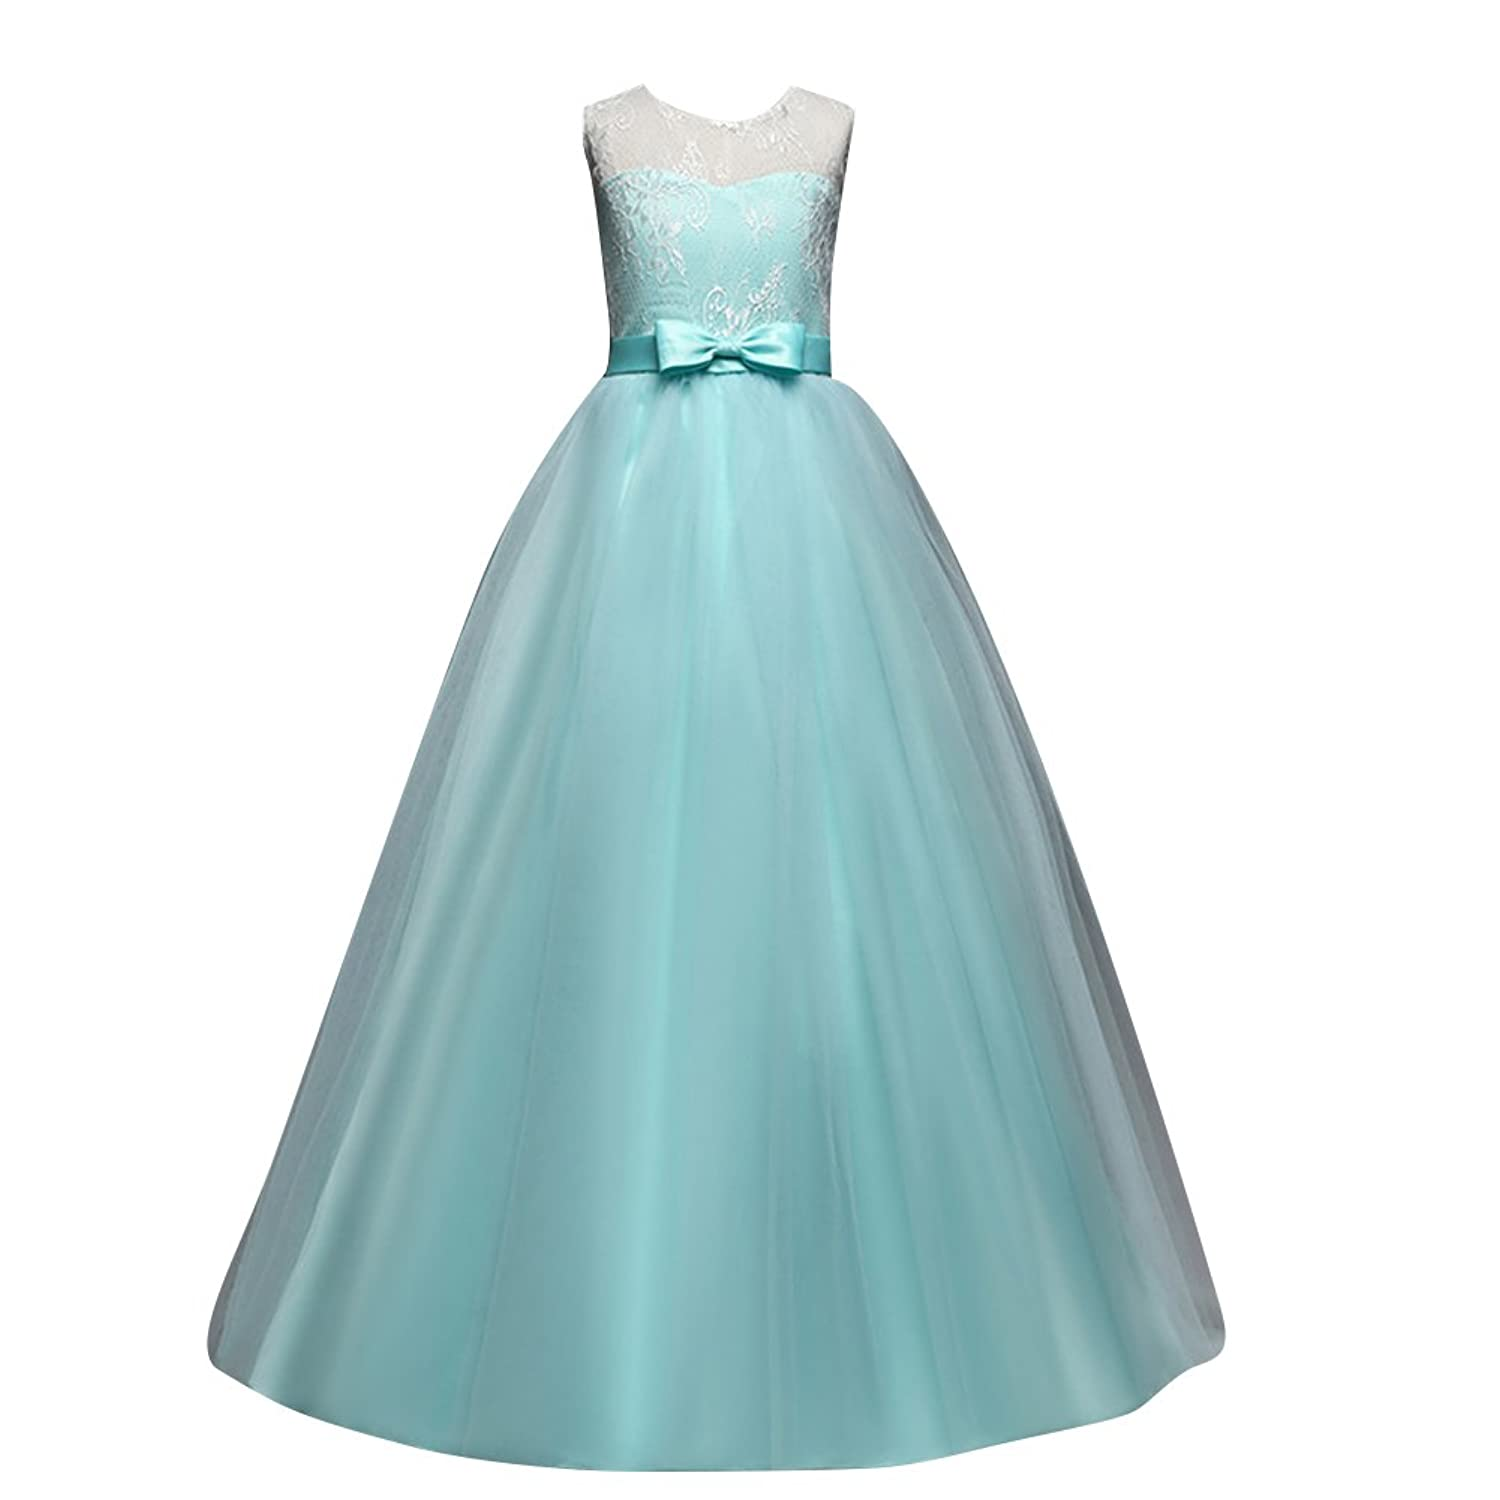 a004305f3ffd Kids girls sleeveless elegant formal party ball gown long maxi dress flower  girl dresses; Beautiful and gorgeous design, good material, comfy to wear;